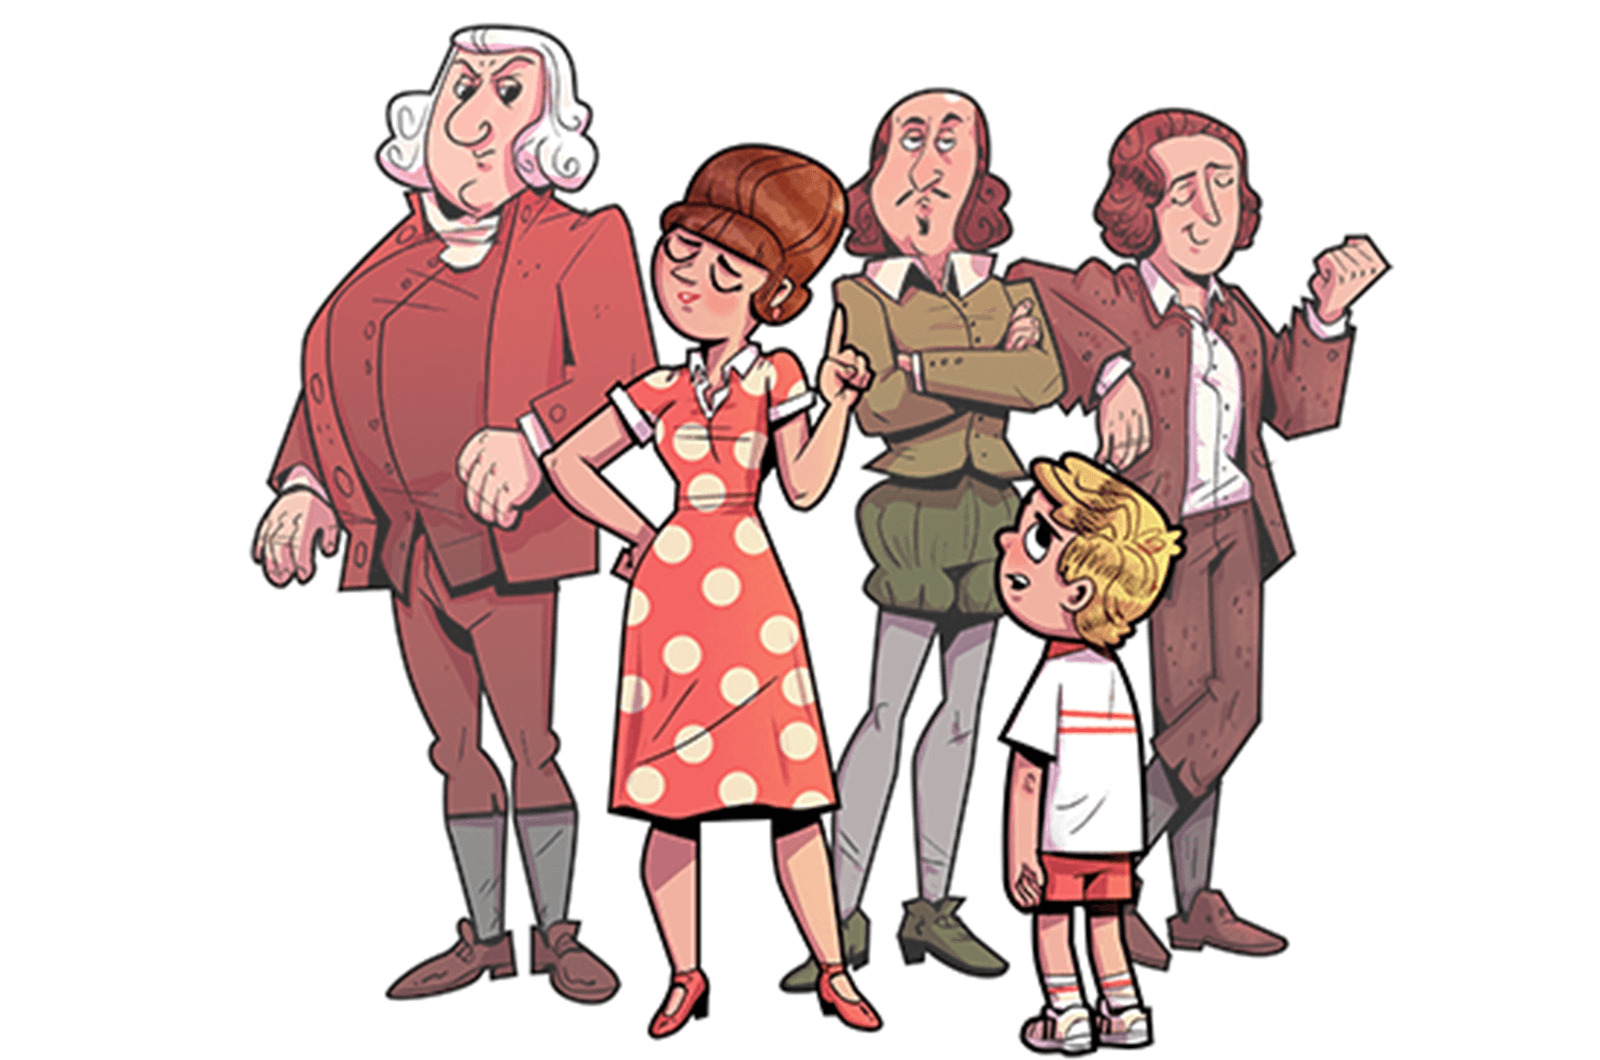 Illustration of a mother figure, son, and three historical figures